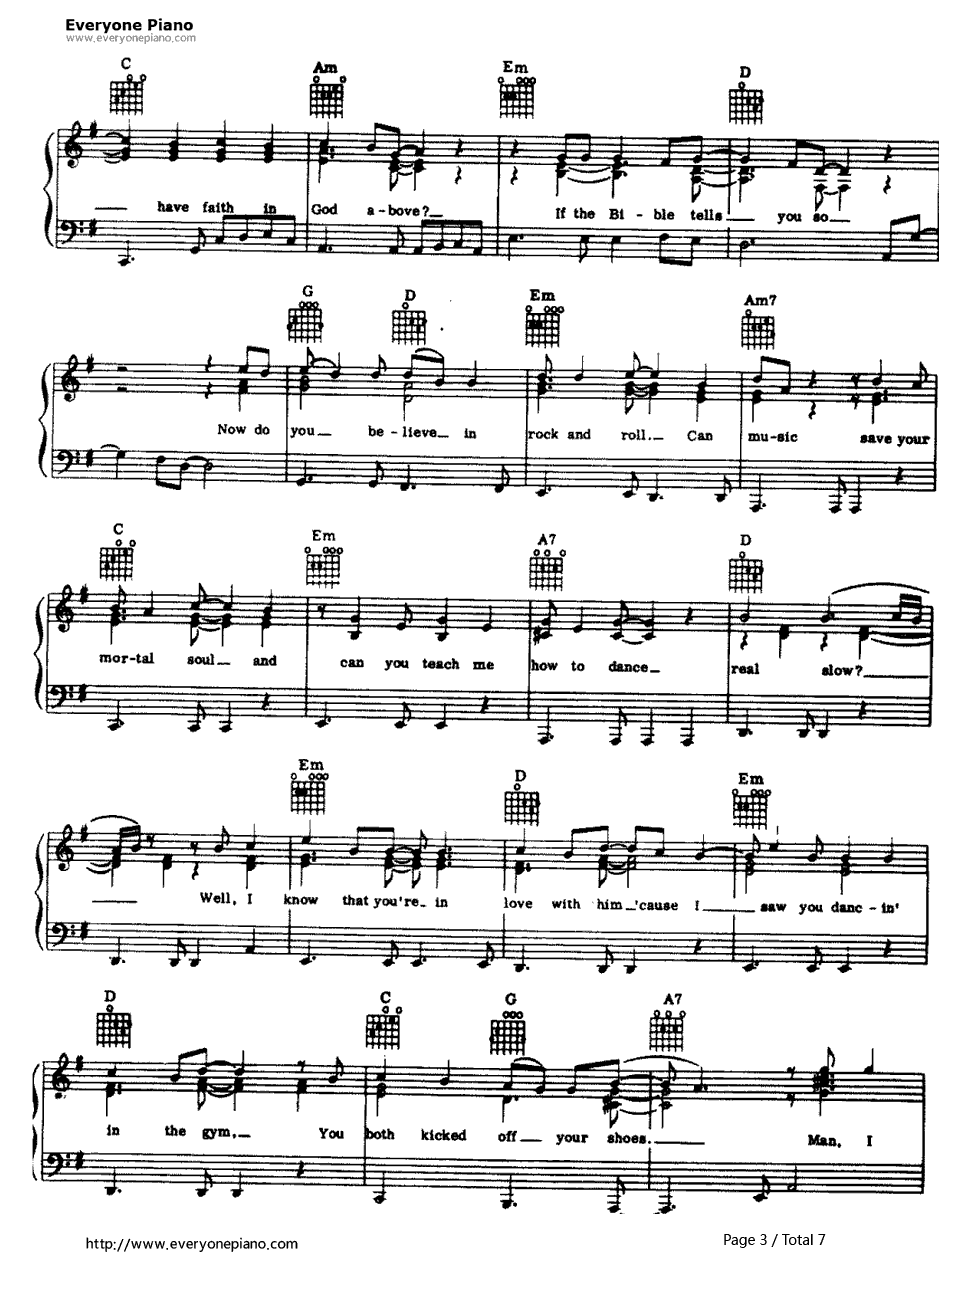 American pie don mclean stave preview 3 free piano sheet music listen now print sheet american pie don mclean stave preview 3 hexwebz Gallery